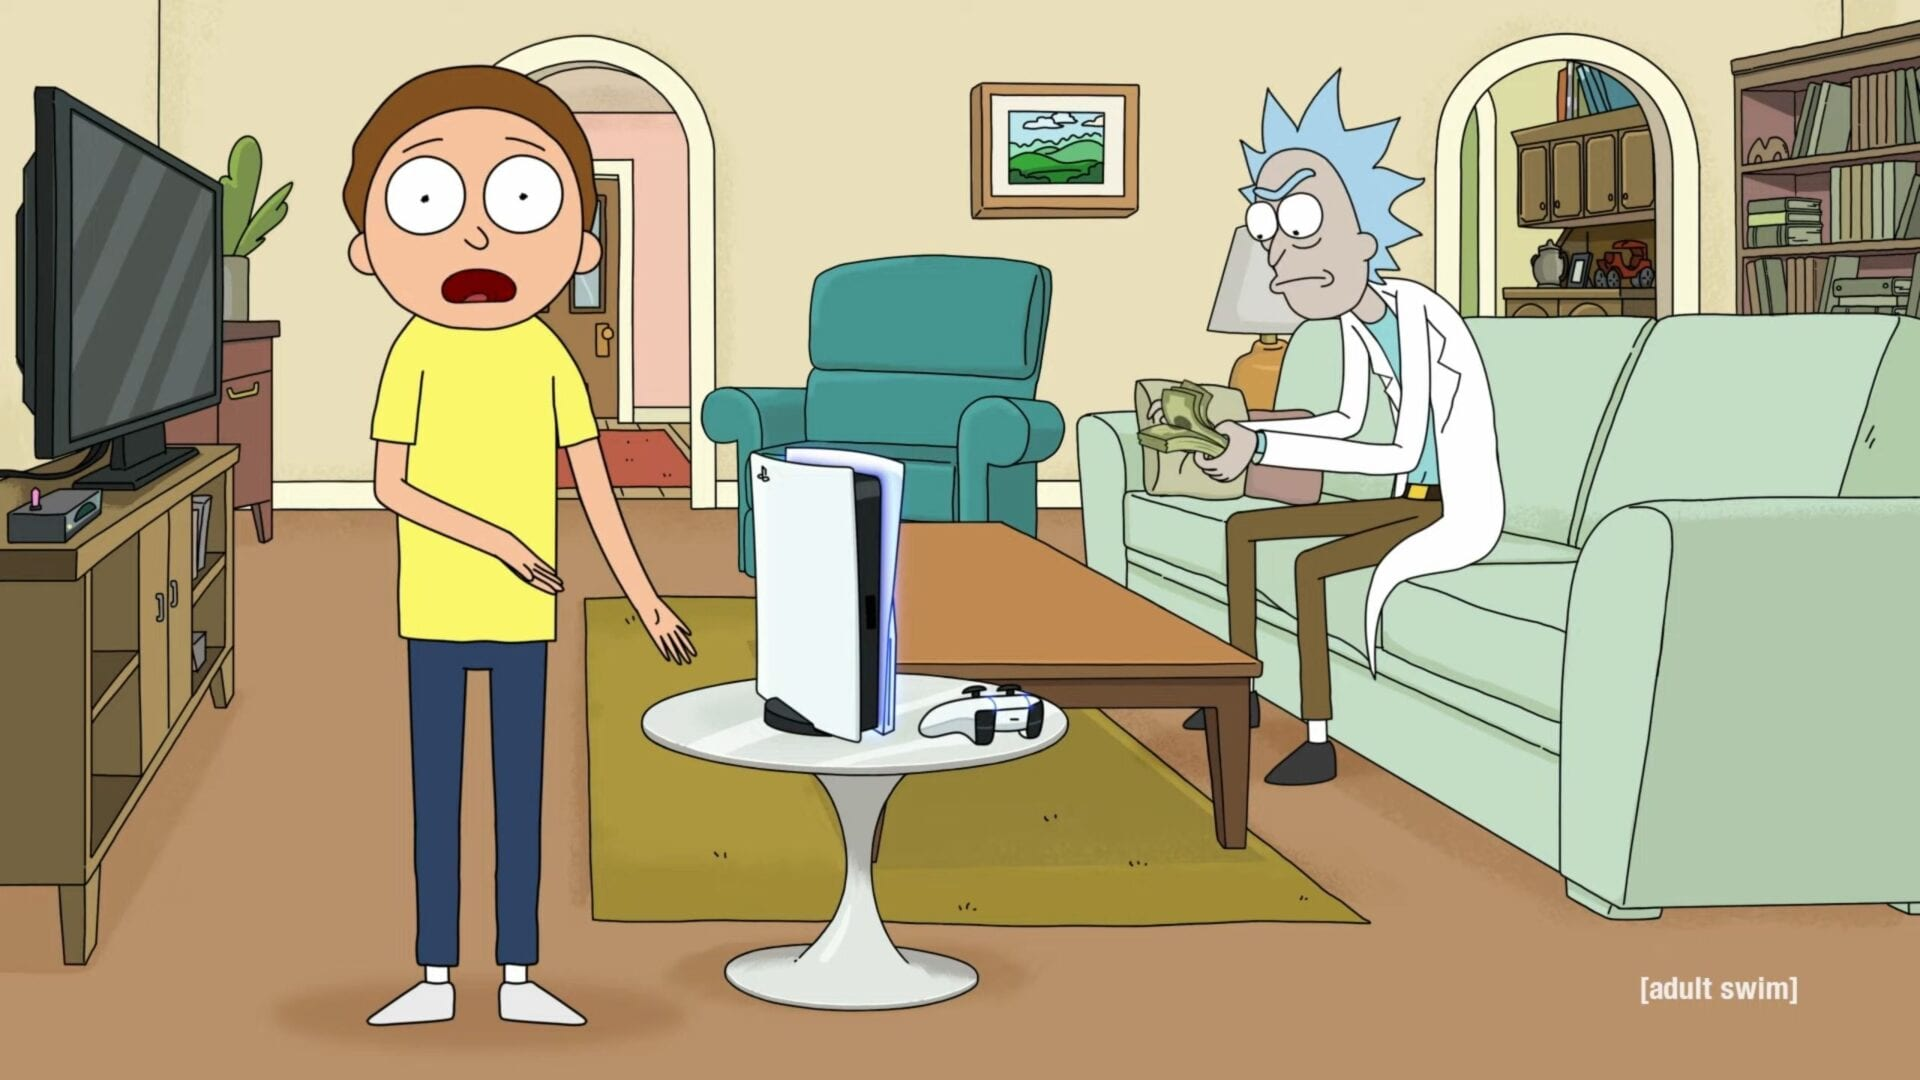 PS5 Advert With Rick and Morty Is Fairly Humorous 1